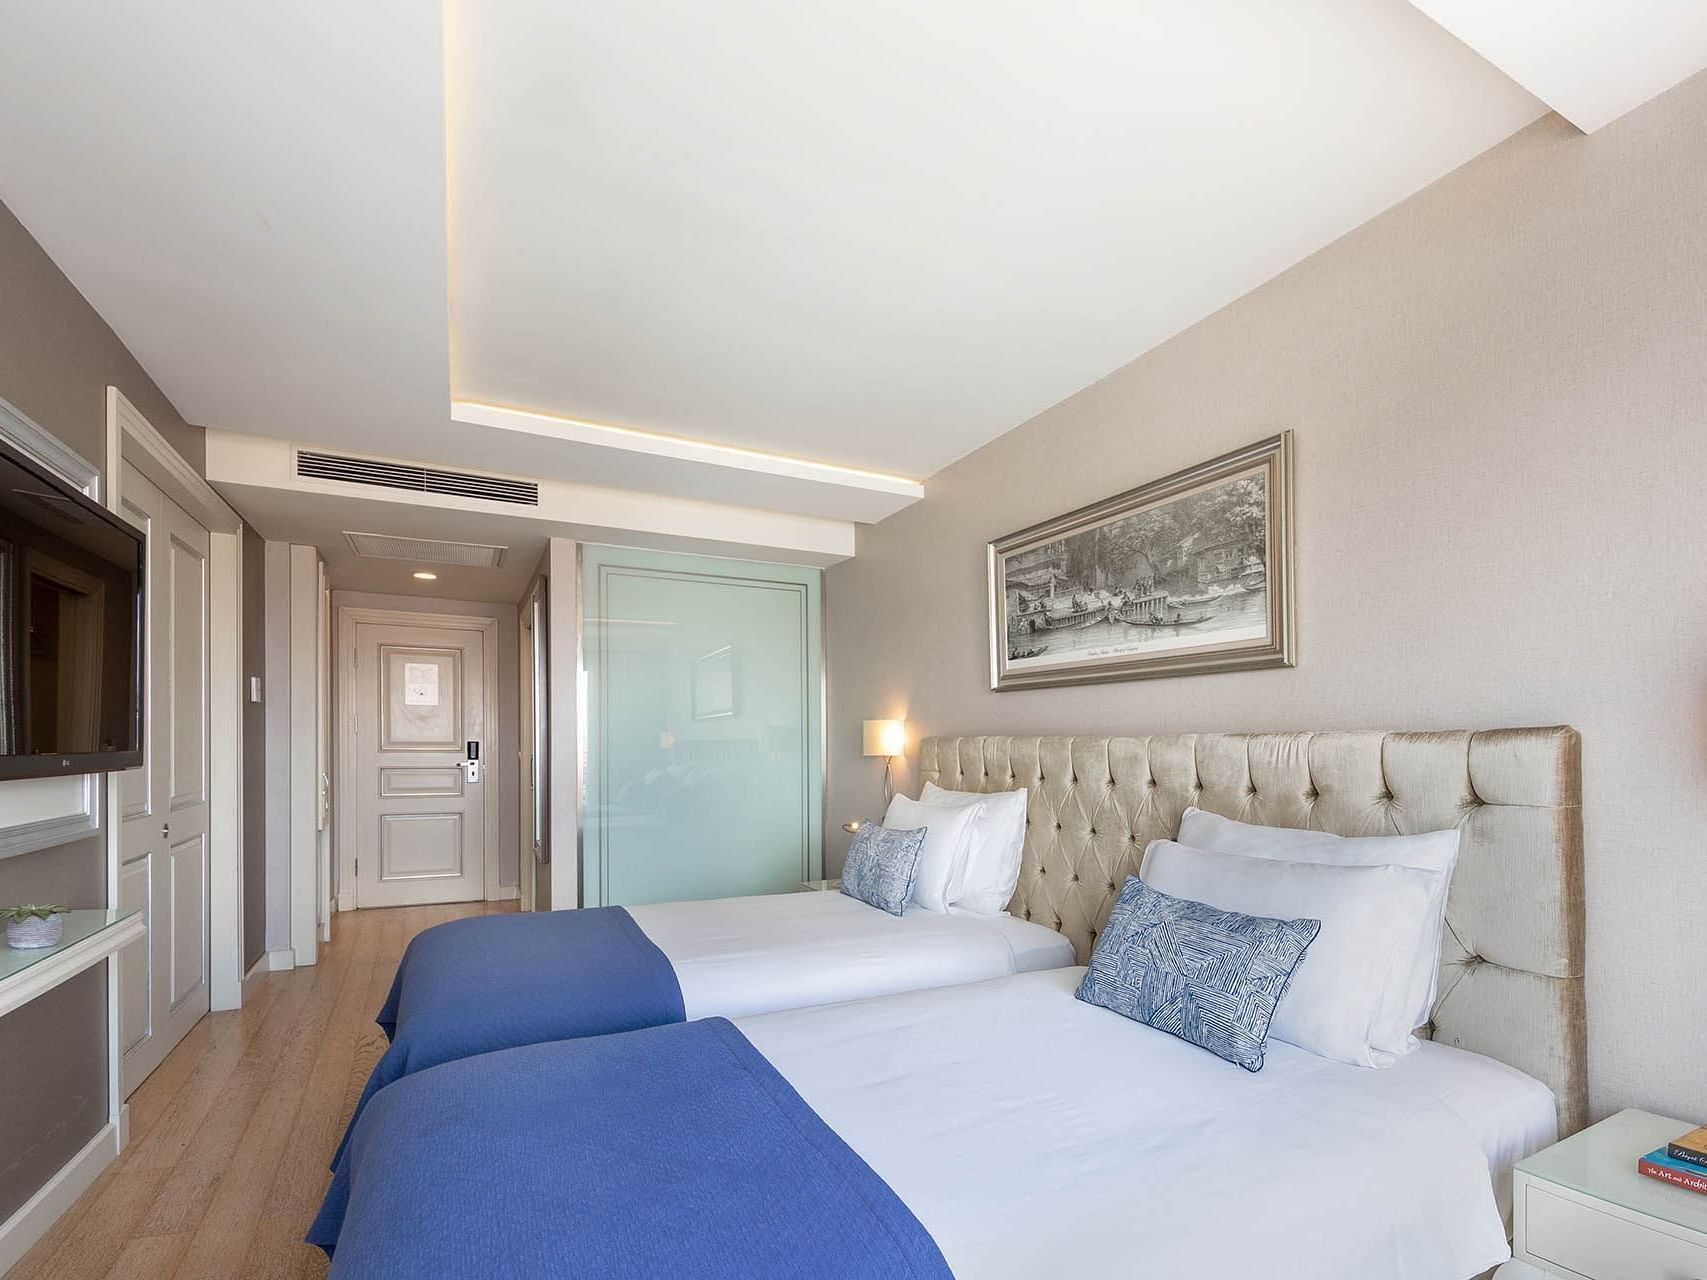 Deluxe Room with two beds at CVK Taksim Hotel Istanbul